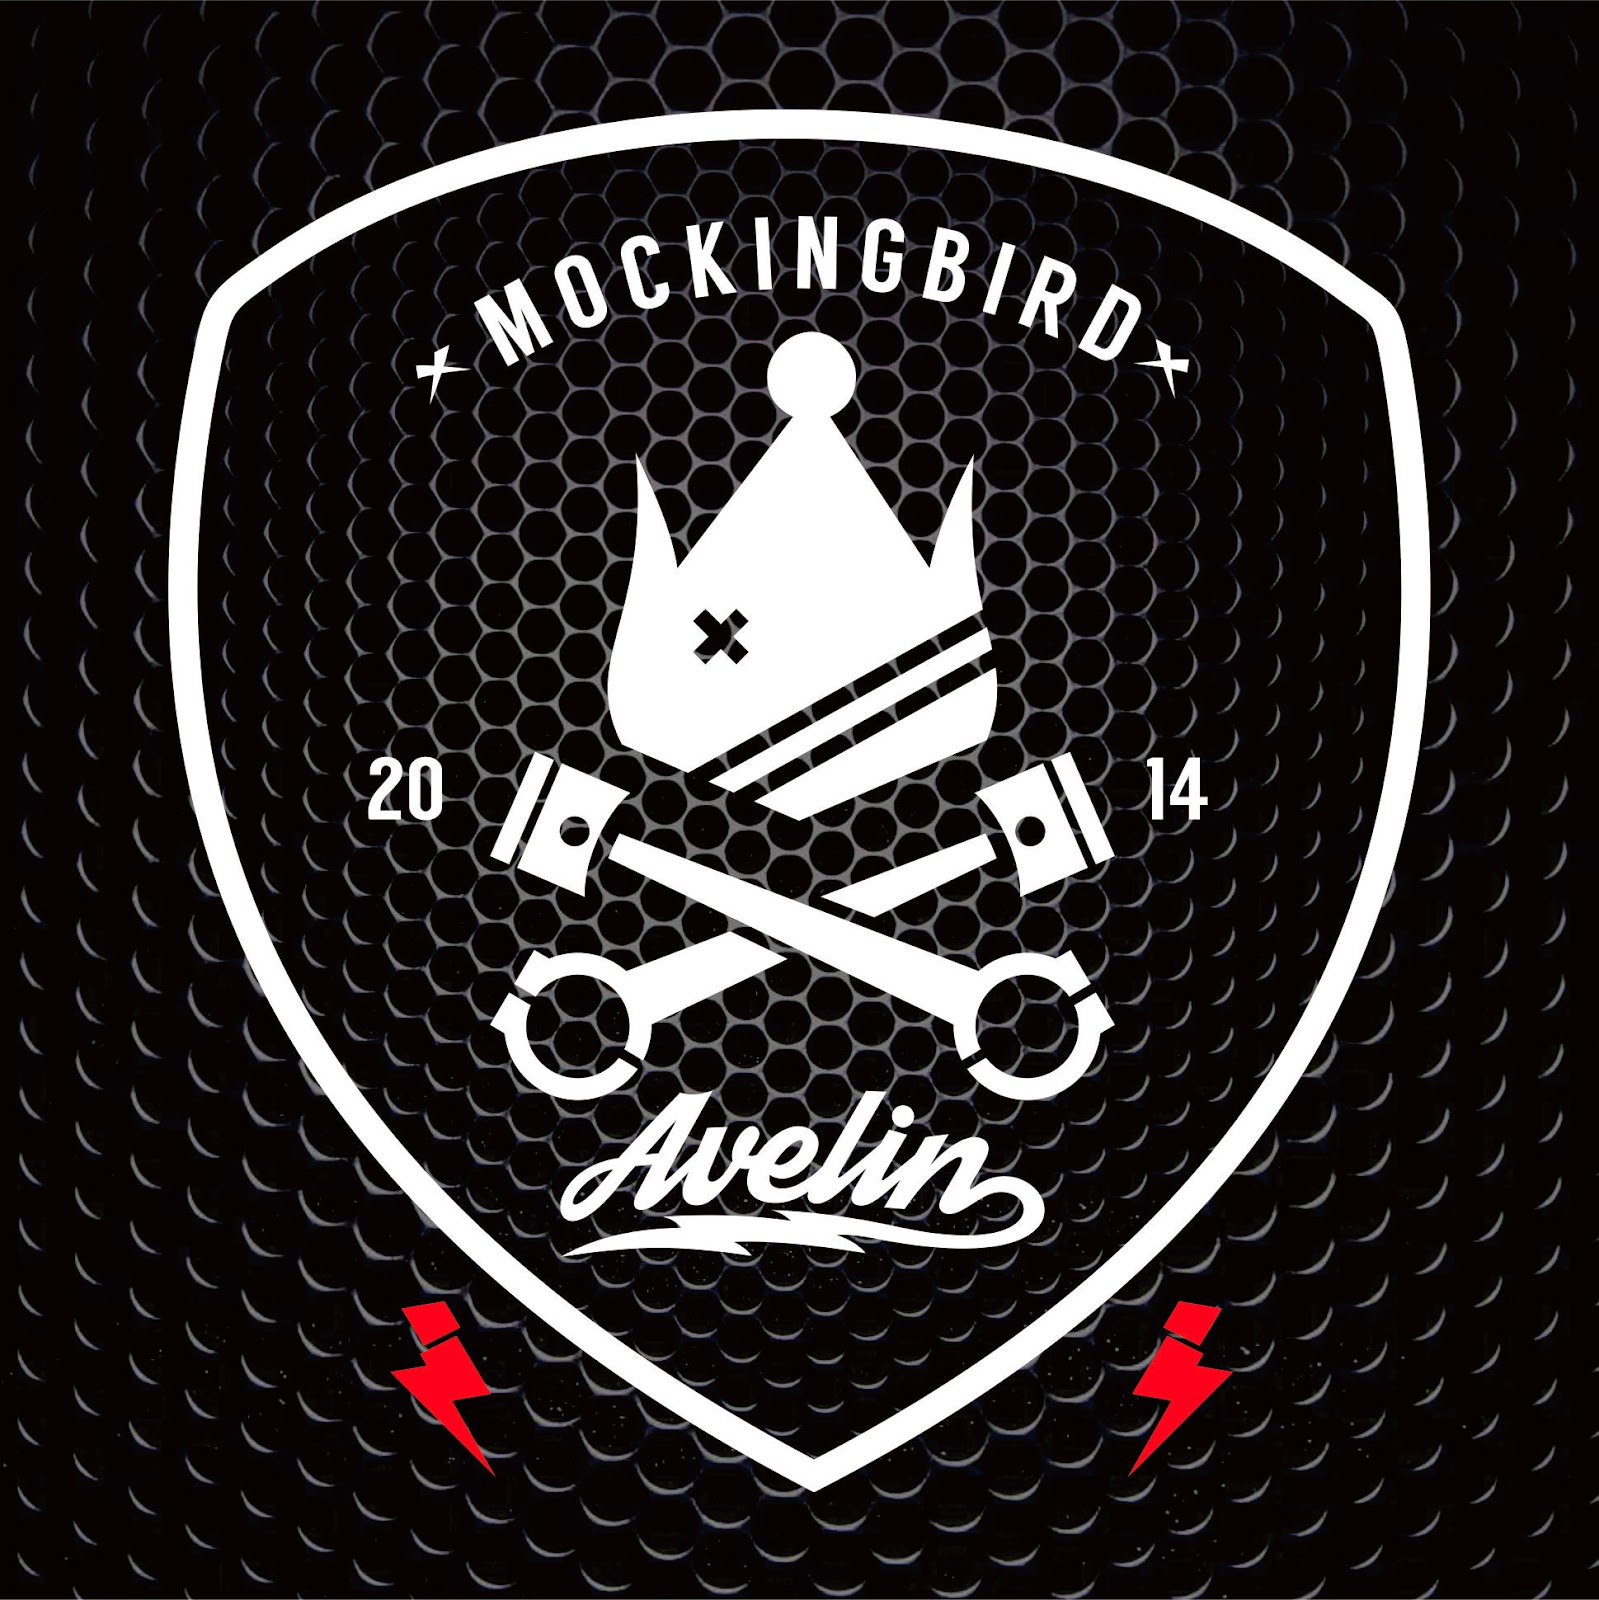 logo distro mockingbird avelin clothing industry